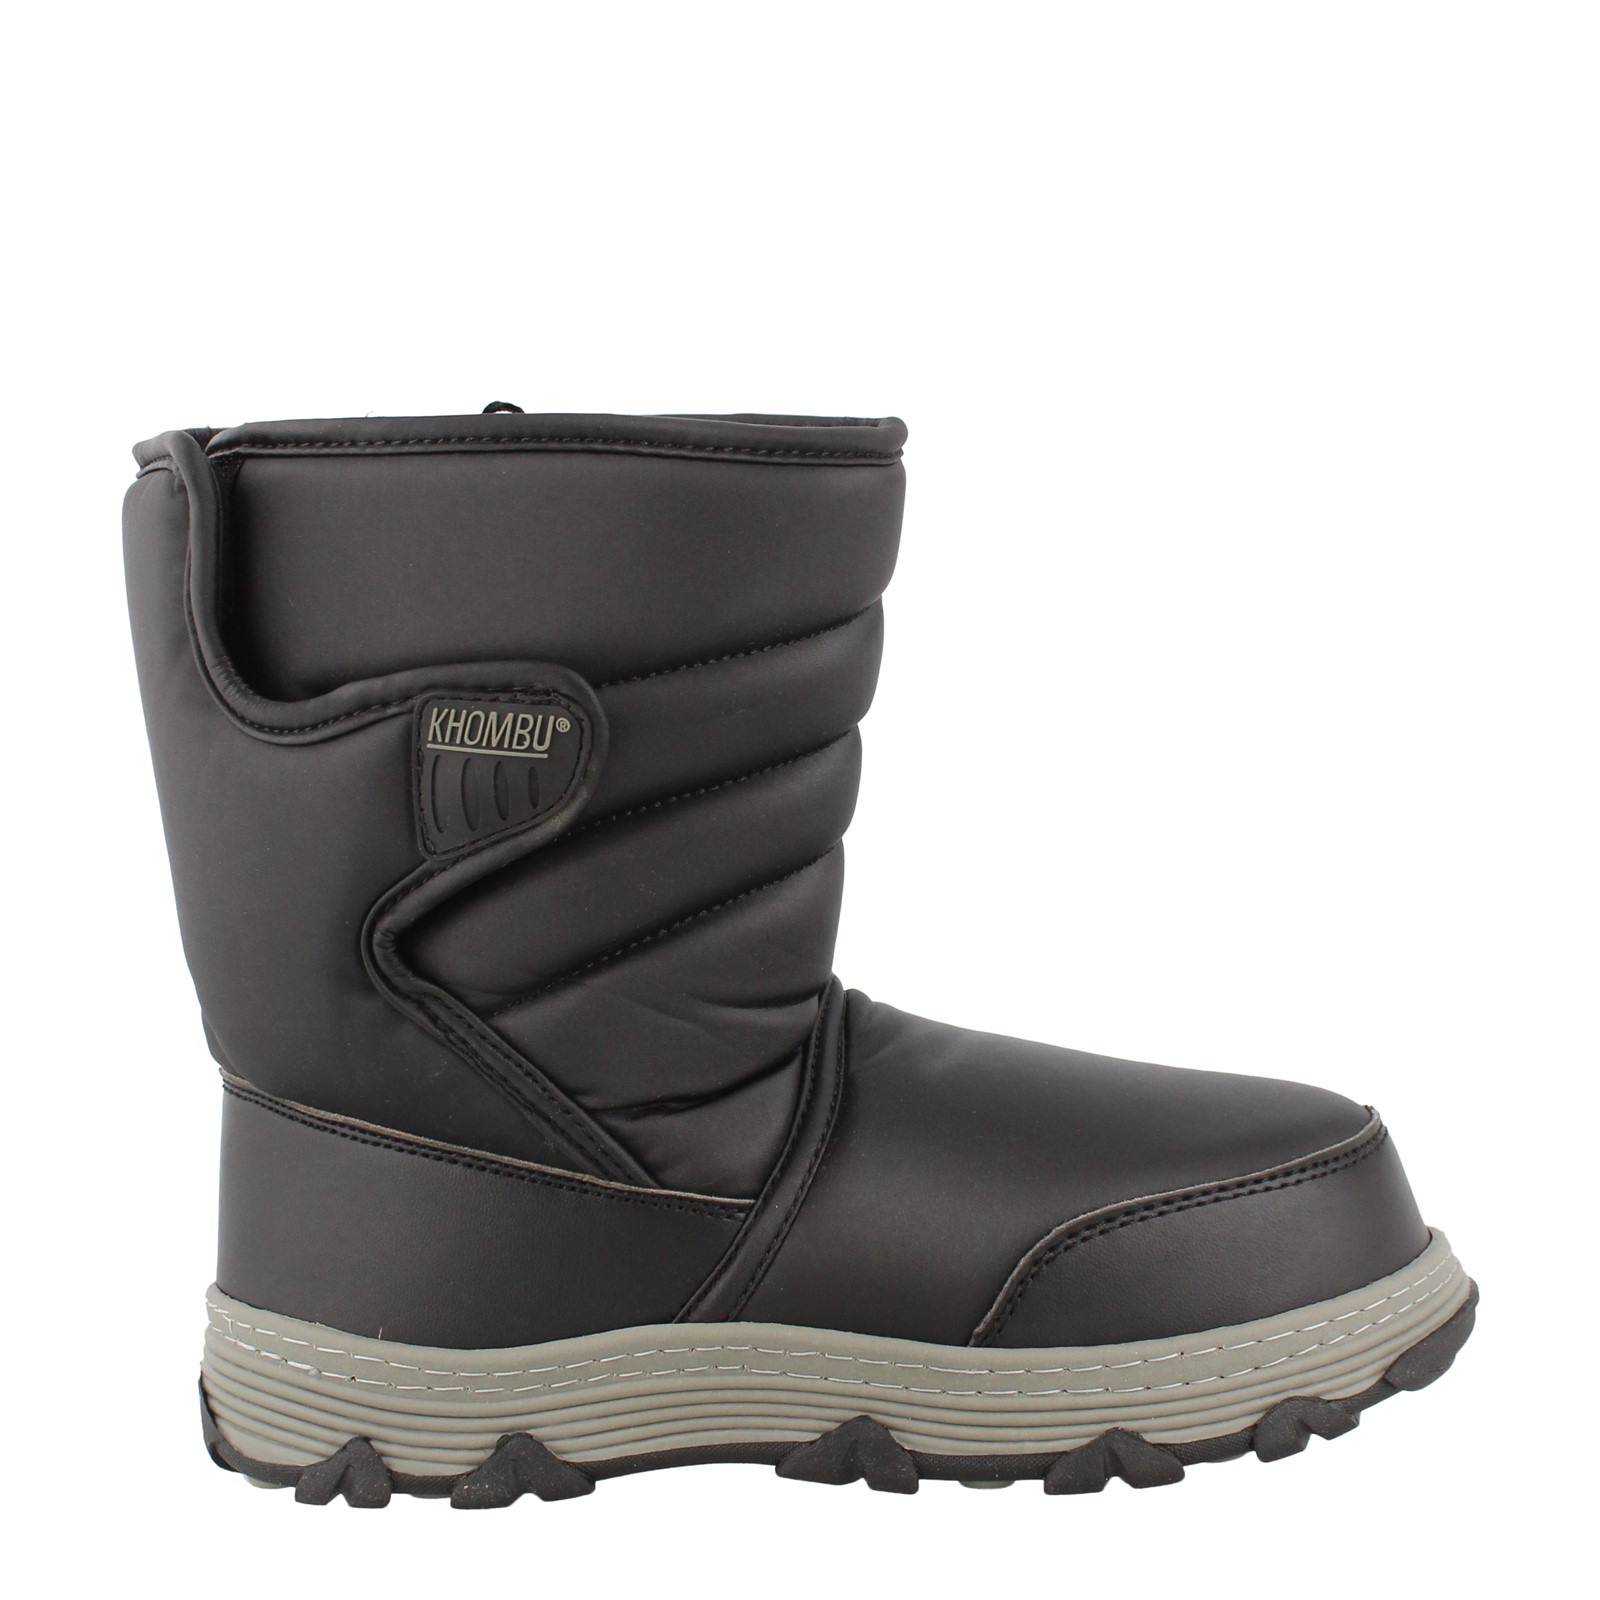 Boy's Khombu, Jiminy Winter Boot - Little Kid